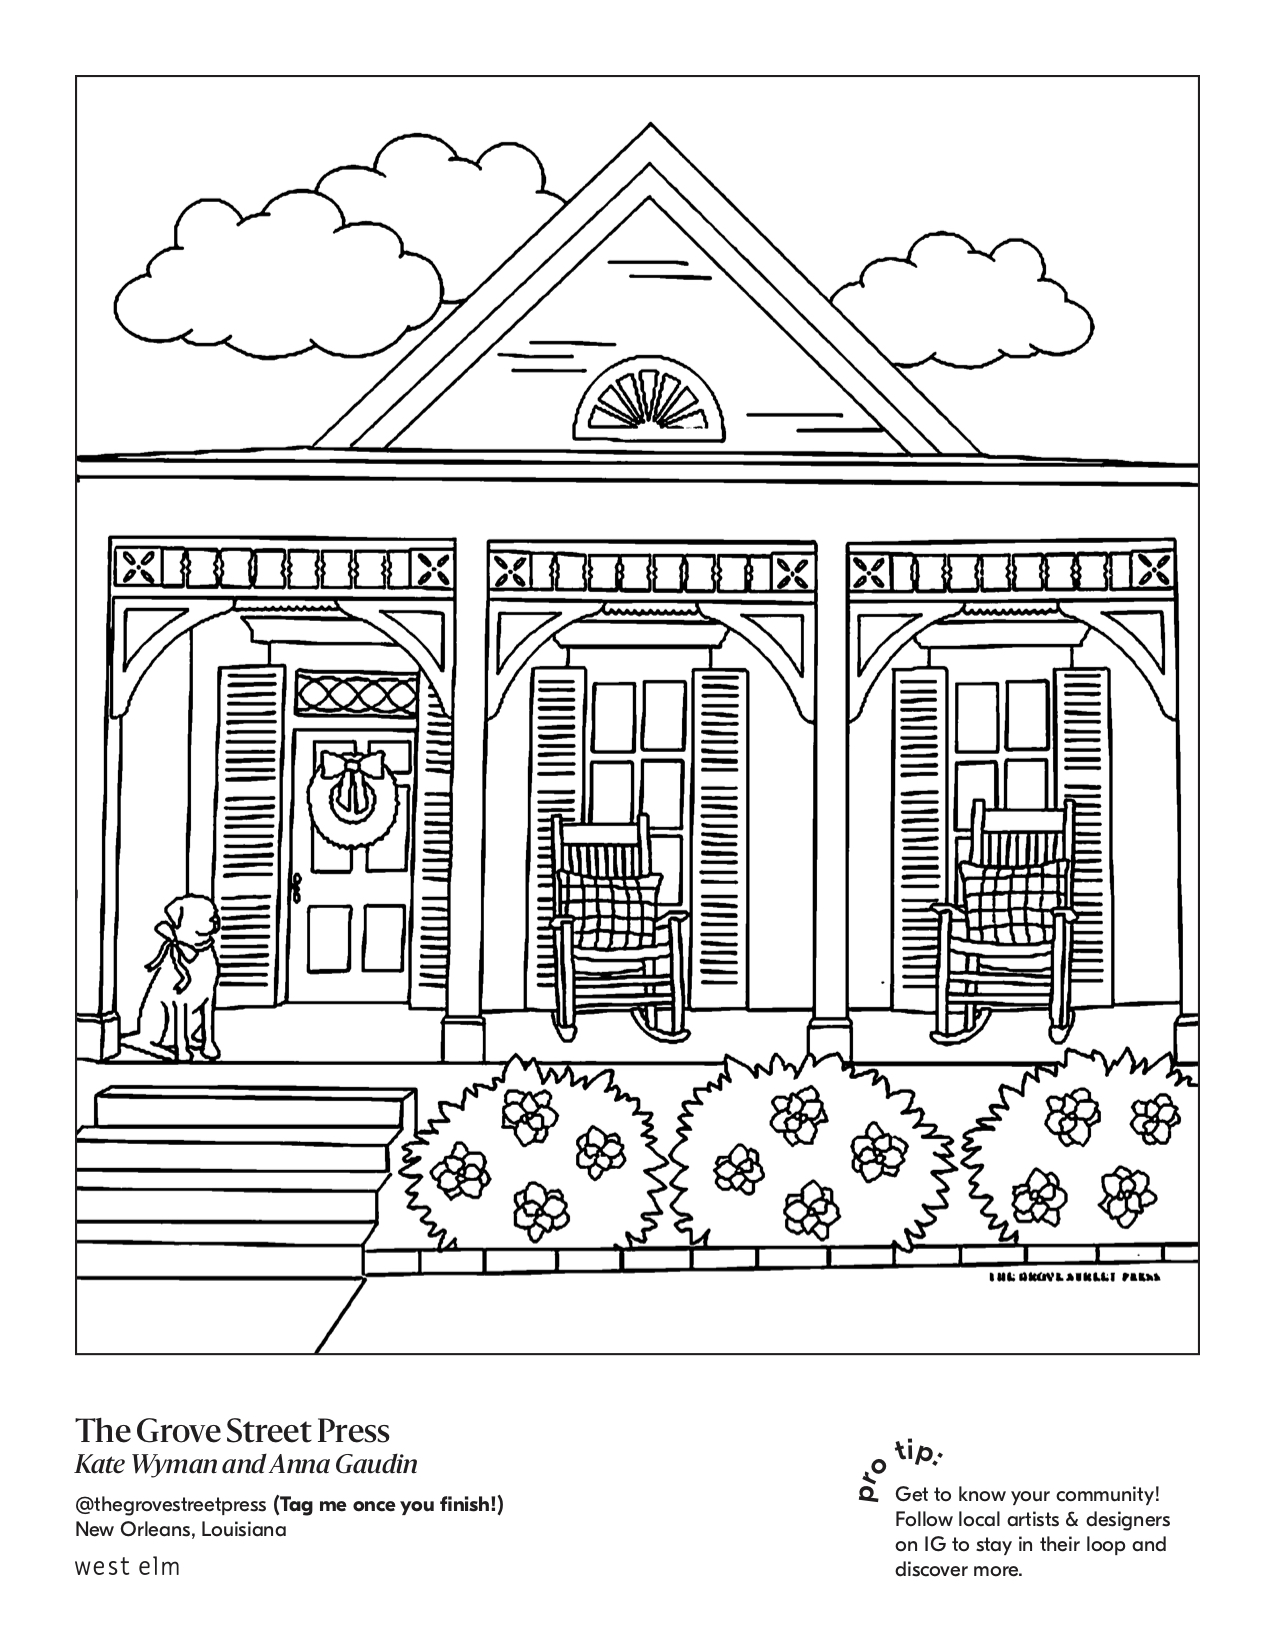 Line drawing of a pitched roof house with a porch.